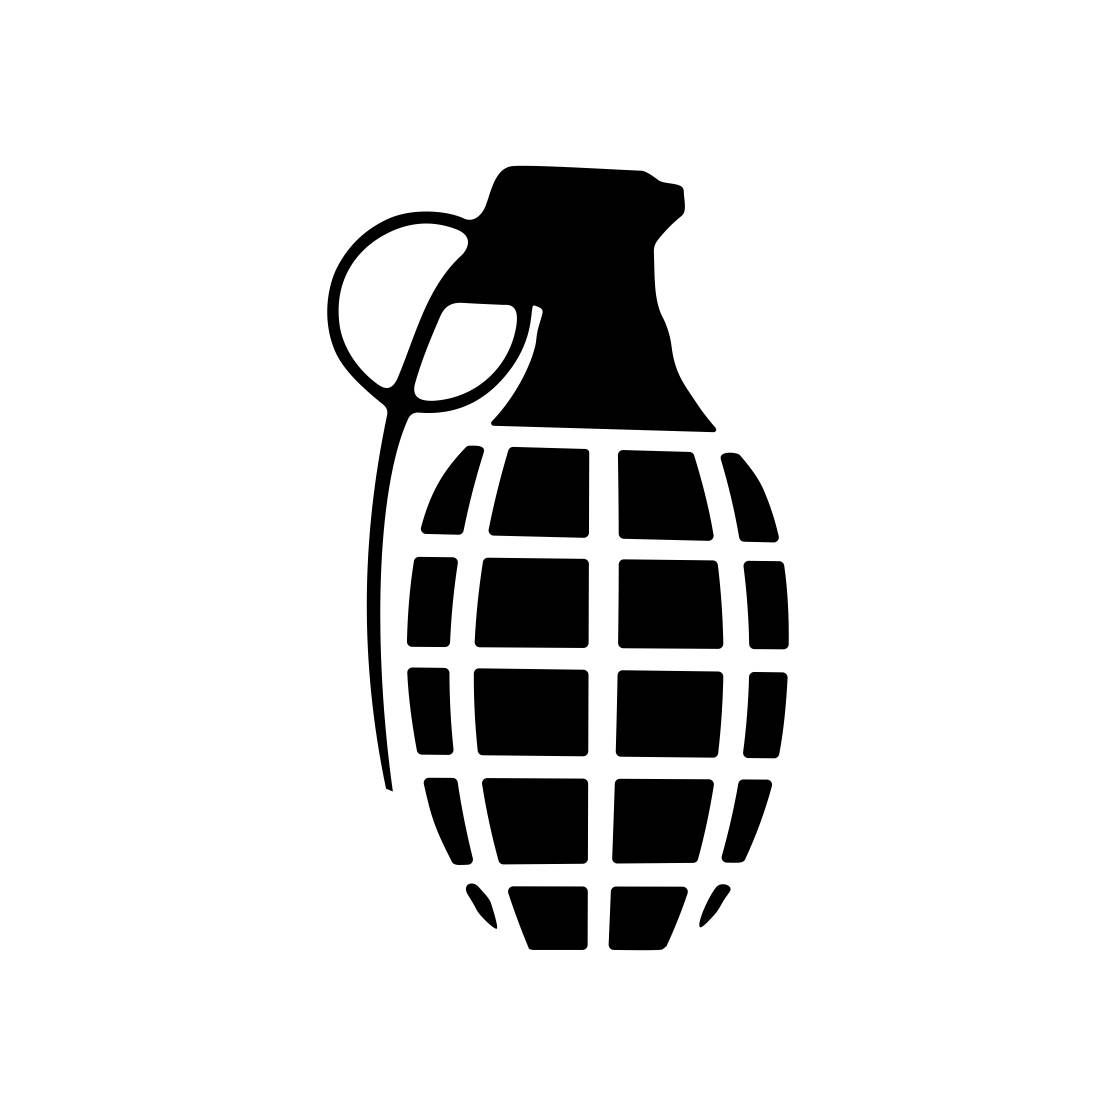 Grenade Military Graphics Svg Dxf Eps Cdr Ai